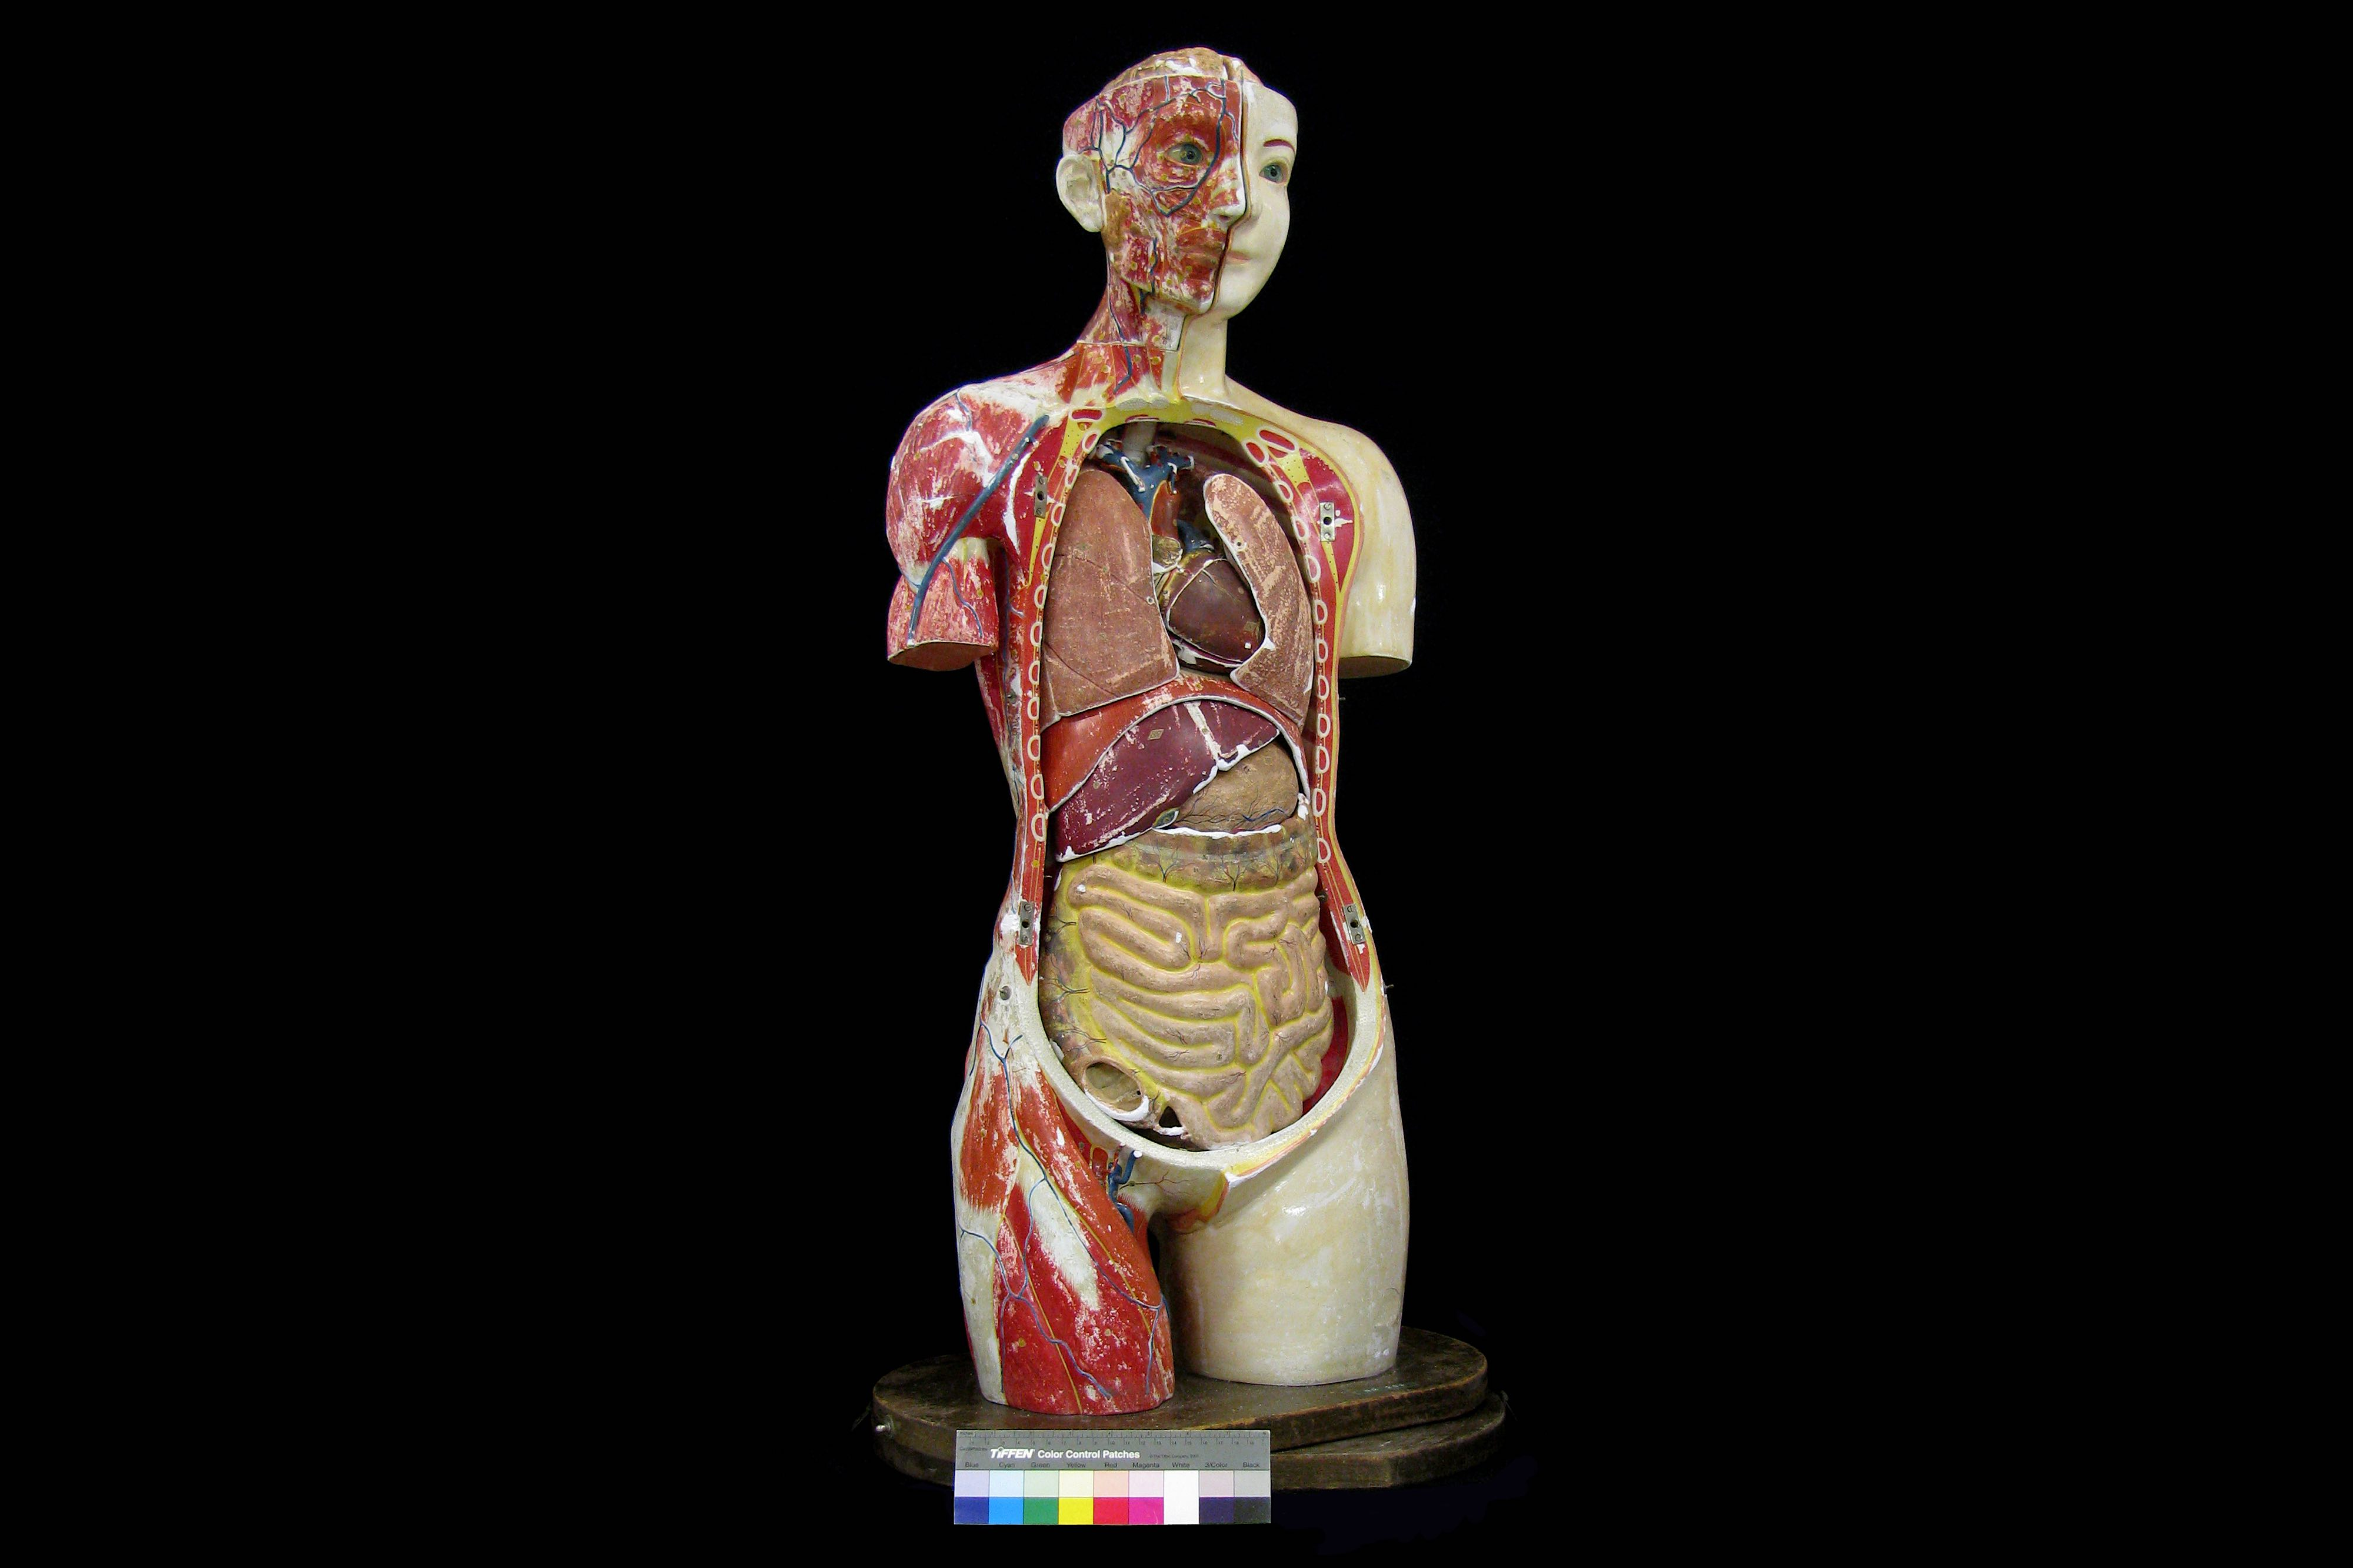 Lot 32 - A FINE 1930'S JAPANESE LIFE-SIZE ANATOMICAL MODEL TORSO OF THE FEMALE FIGURE PRODUCED IN 1934 BY THE